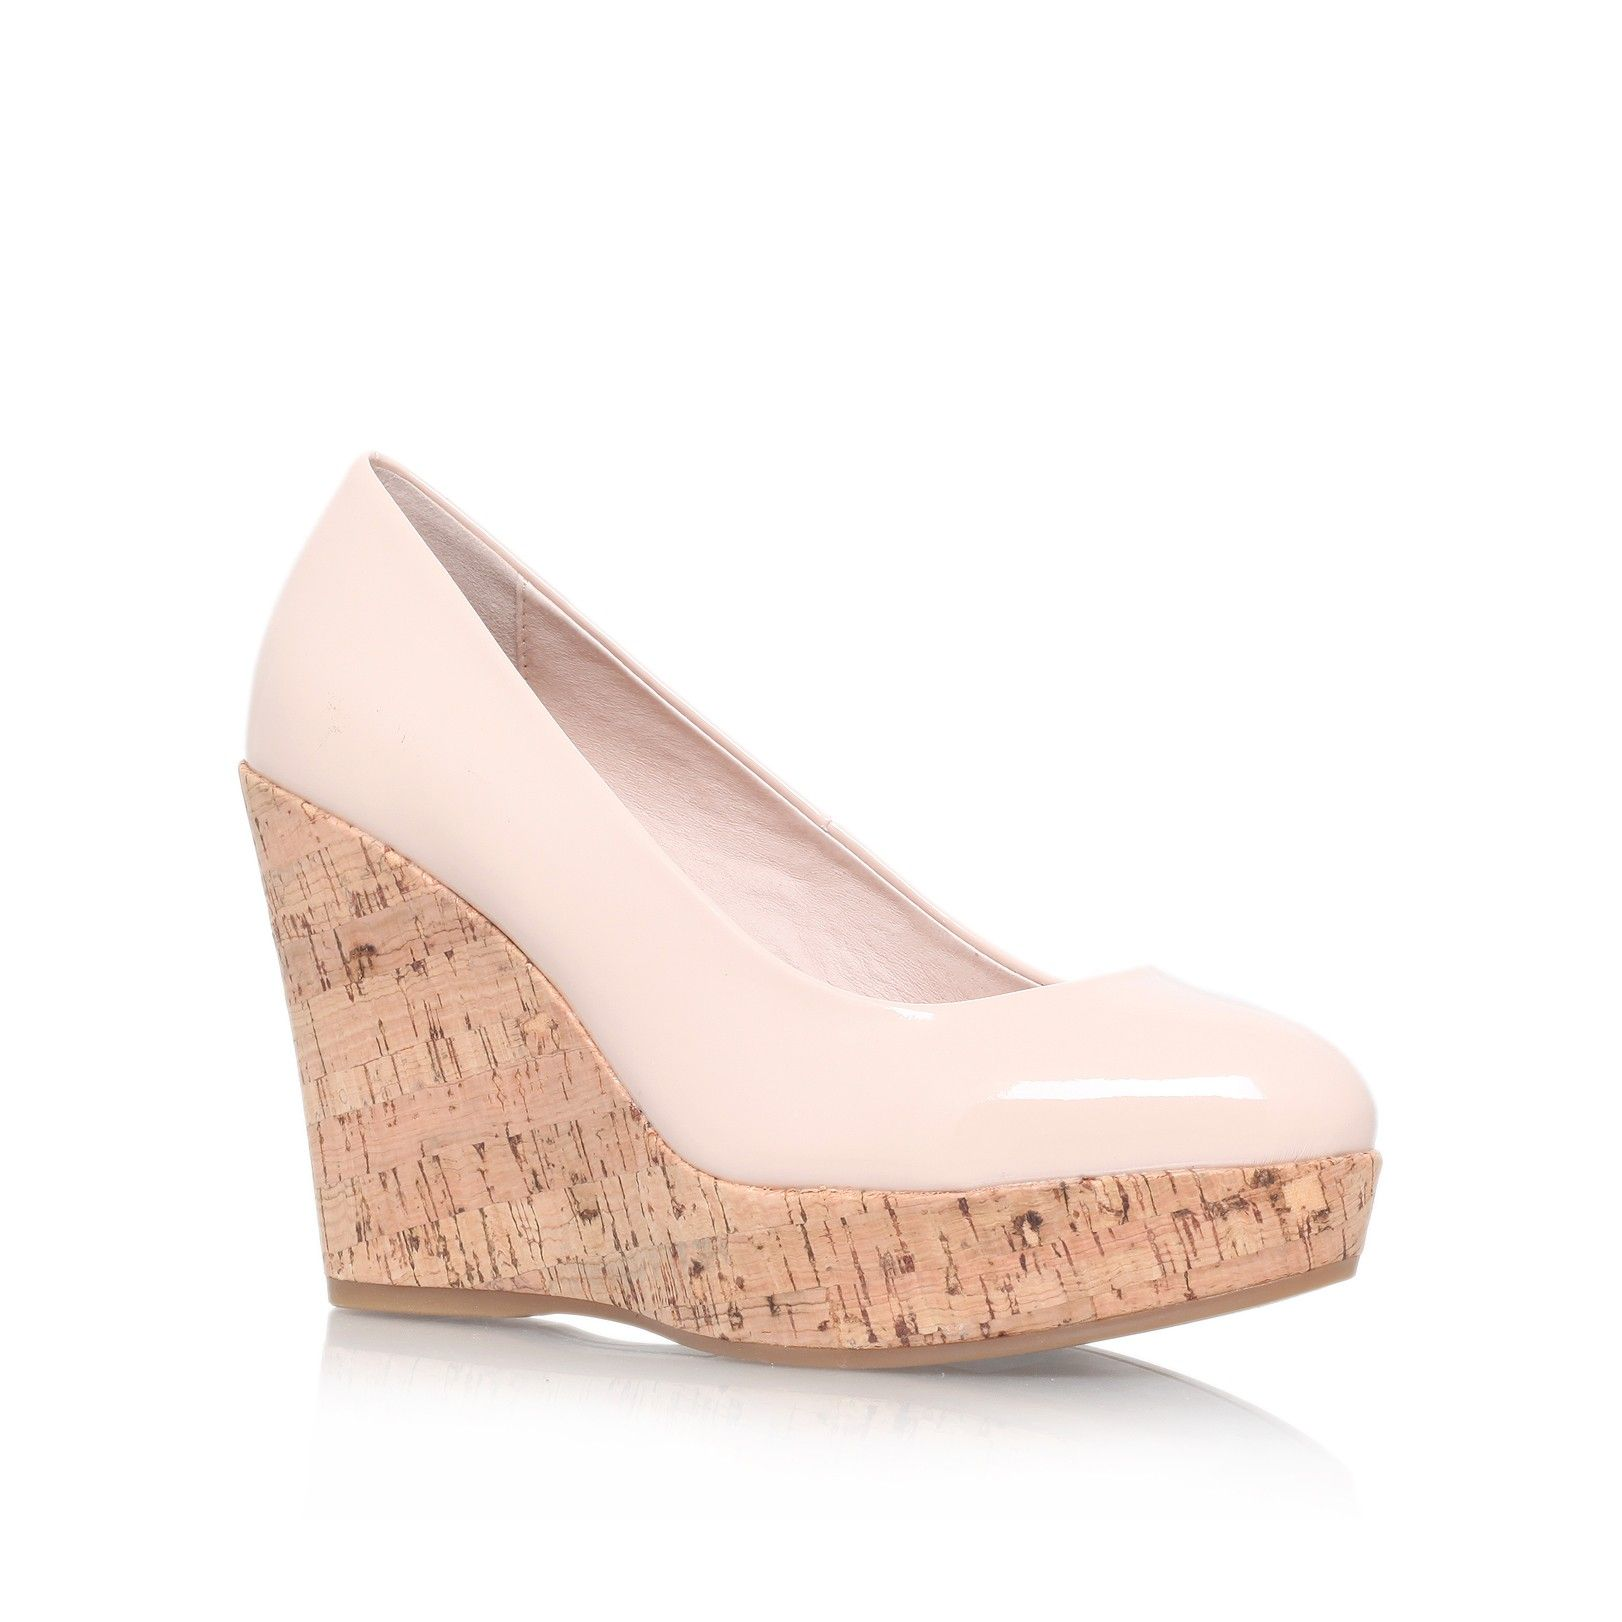 1935809d29be attend nude high heel wedge shoes from Carvela Kurt Geiger